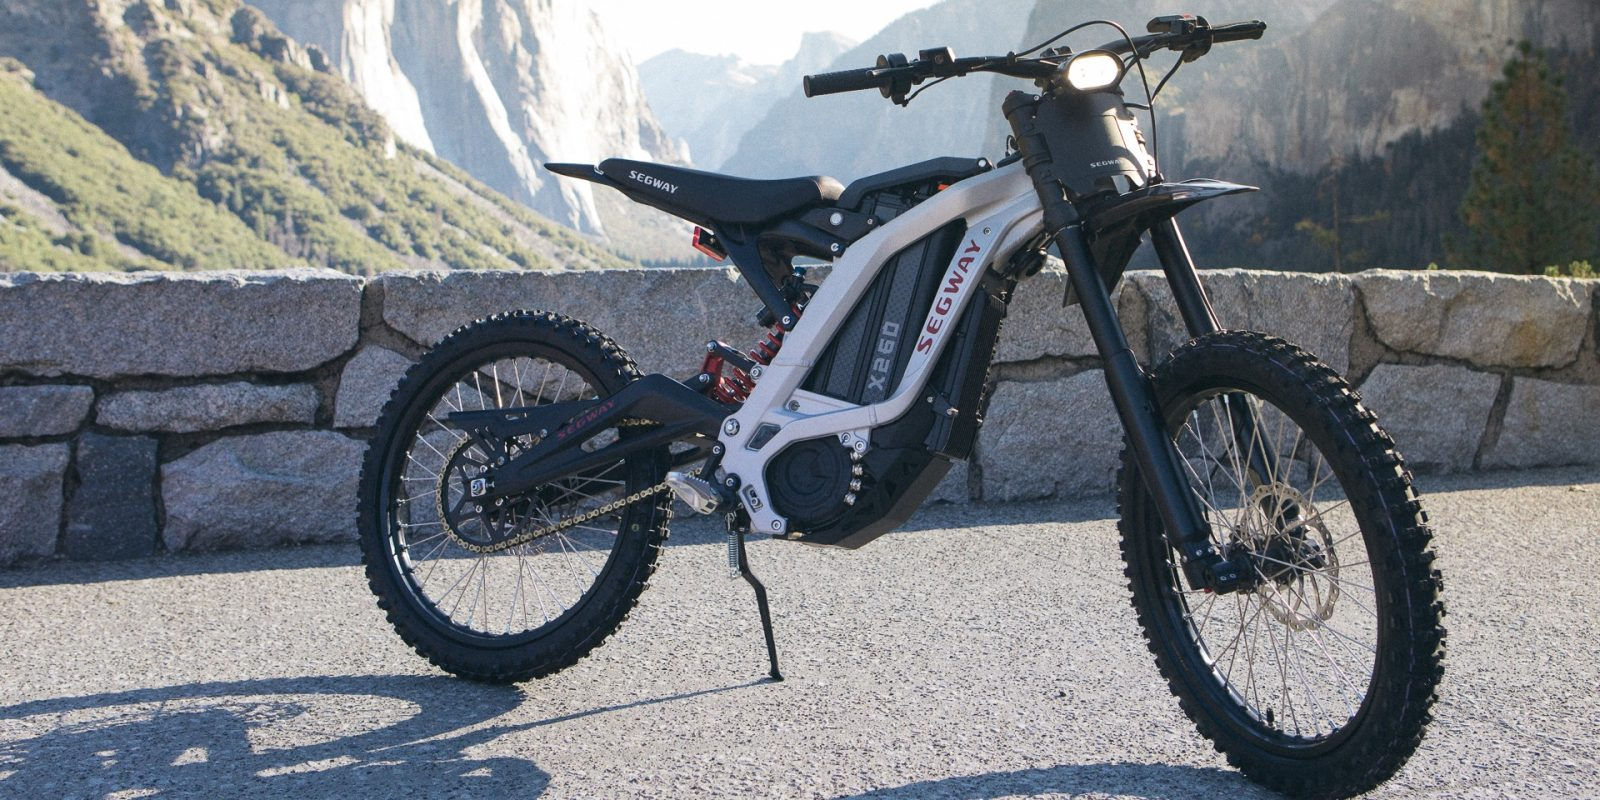 Segway unveils electric dirt bike as the company expands into e-powersports